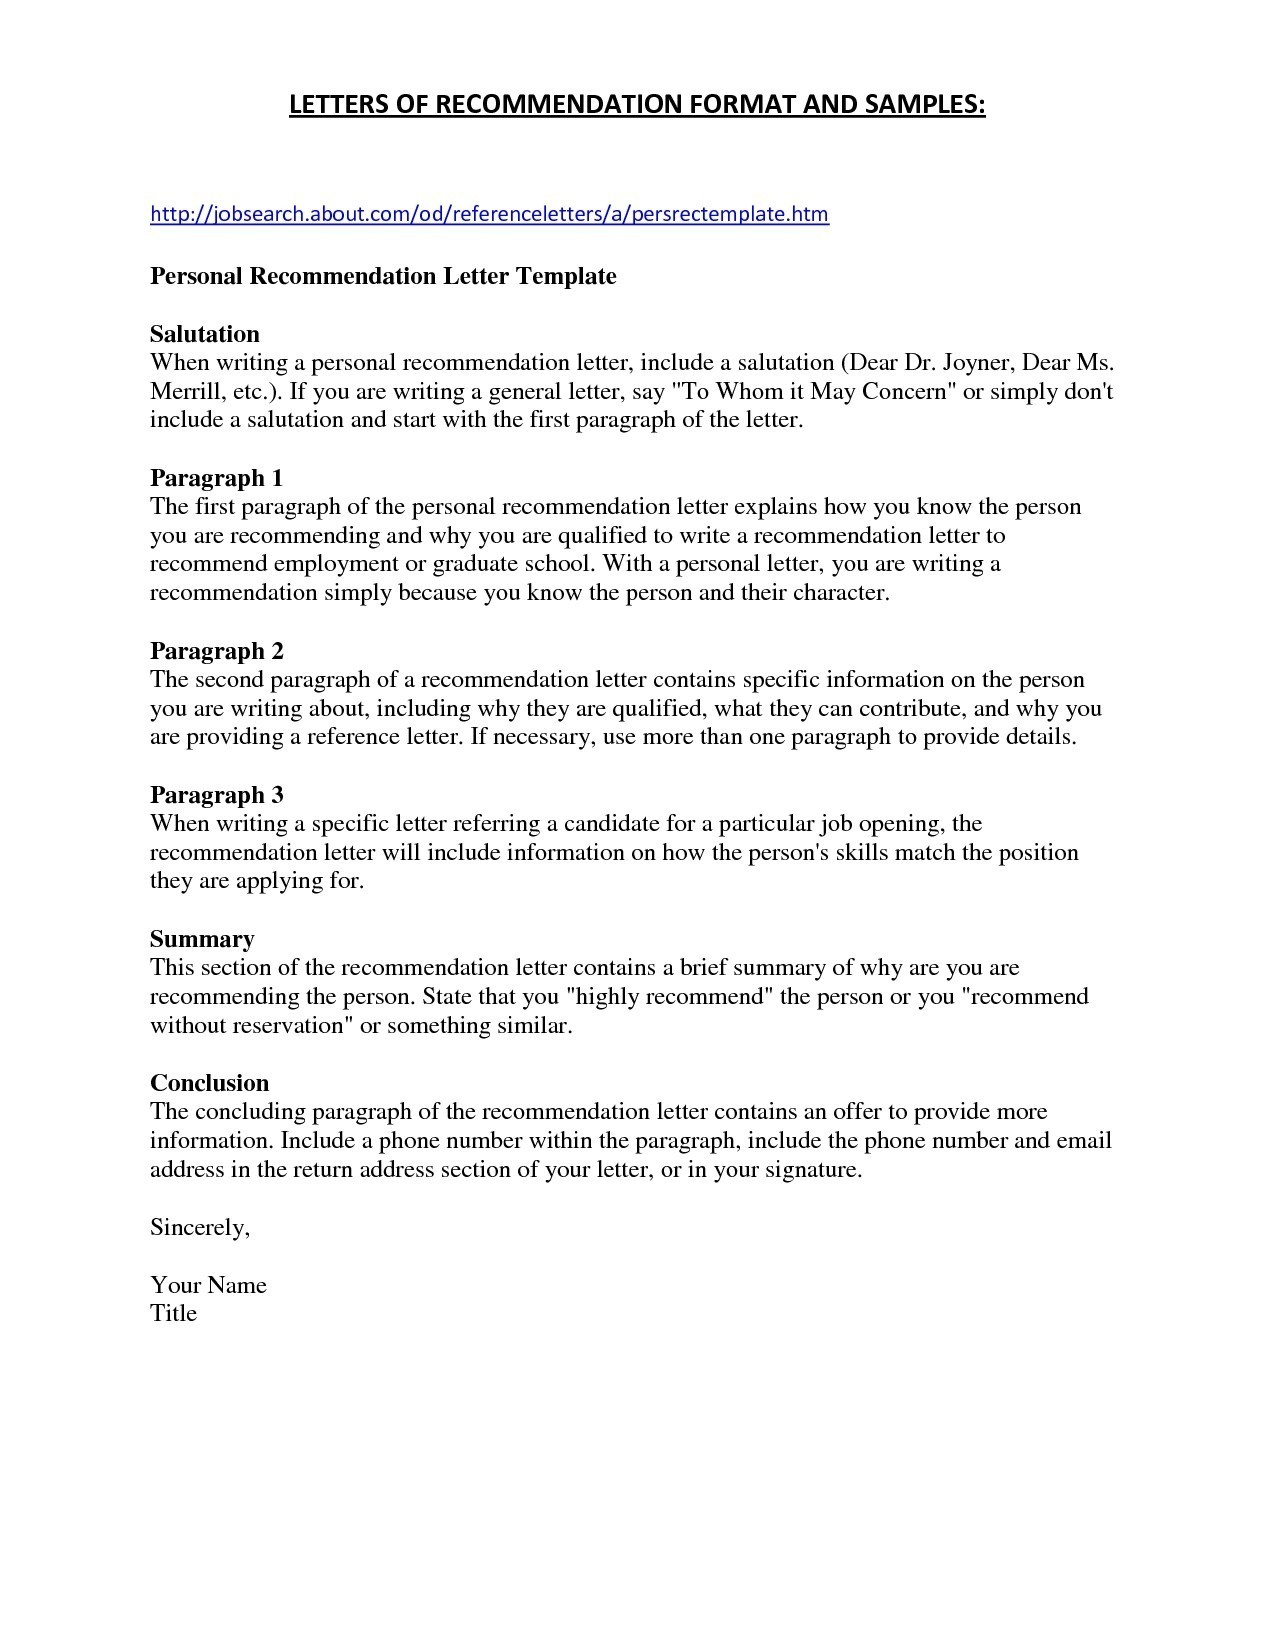 How to Write A formal Grievance Letter Template - formal Plaint Letter Template Legal Ombudsman Copy formal Plaint How